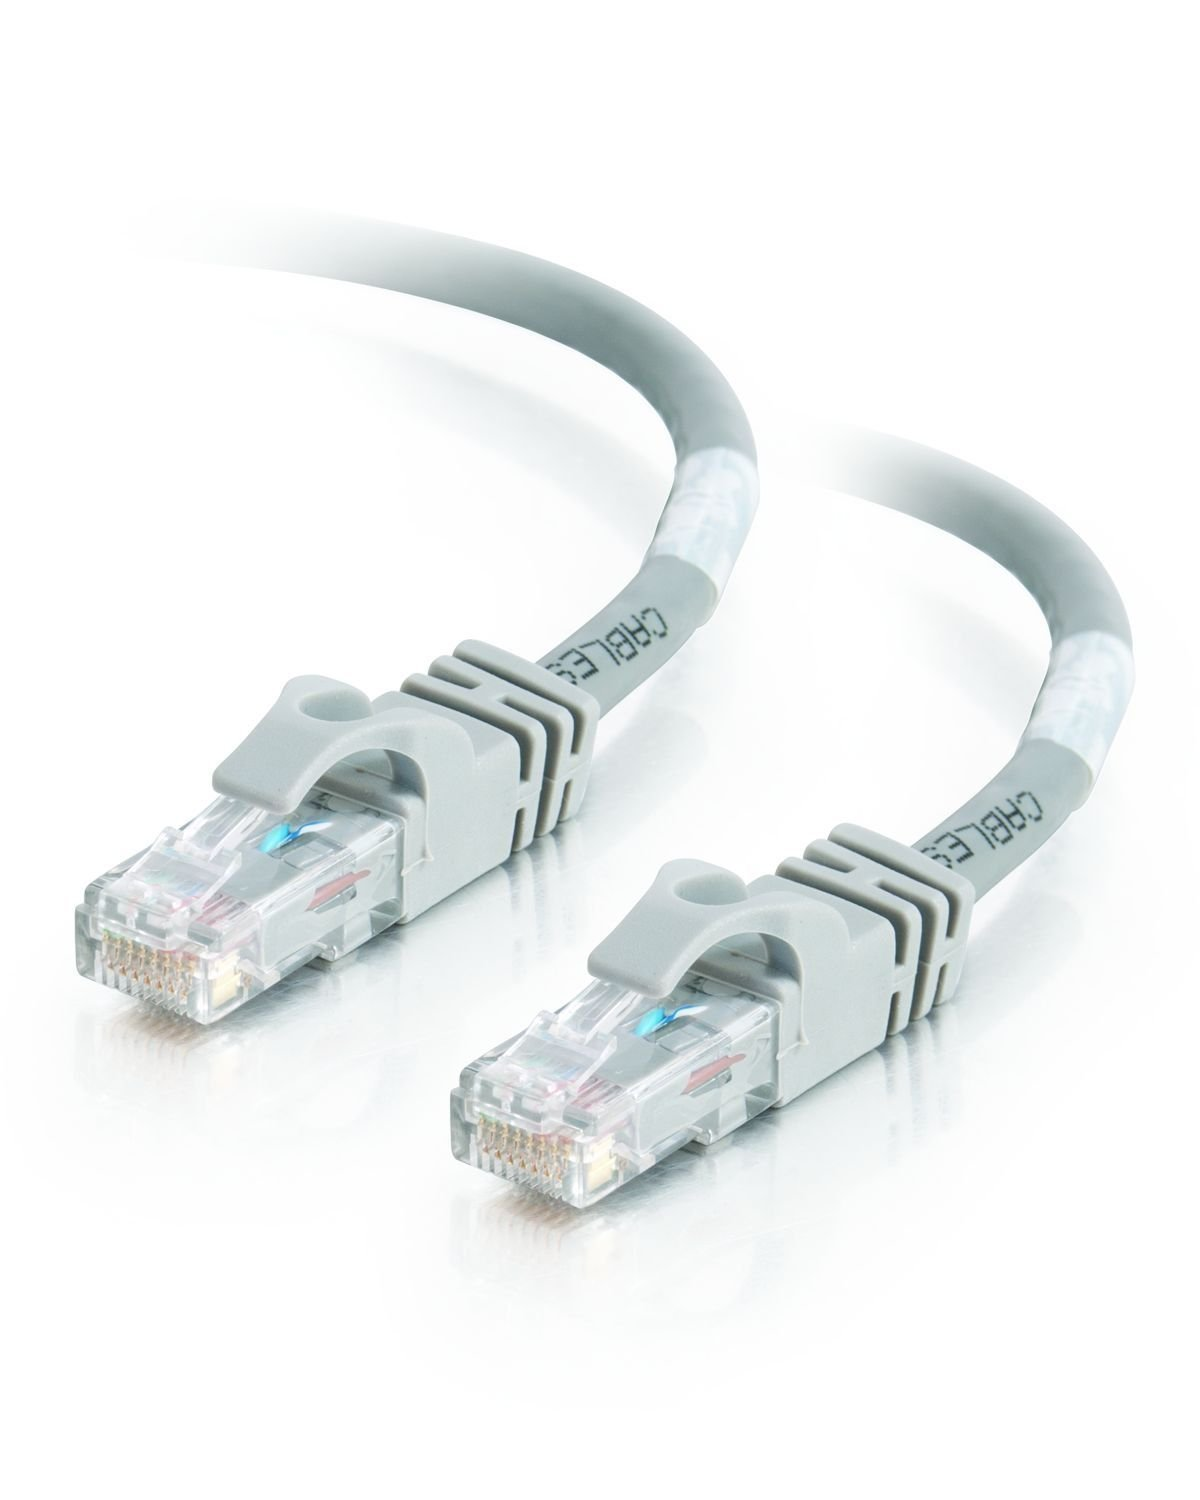 Amazon.com: Cables Direct Online - Cat5 Ethernet Cable for LAN ...